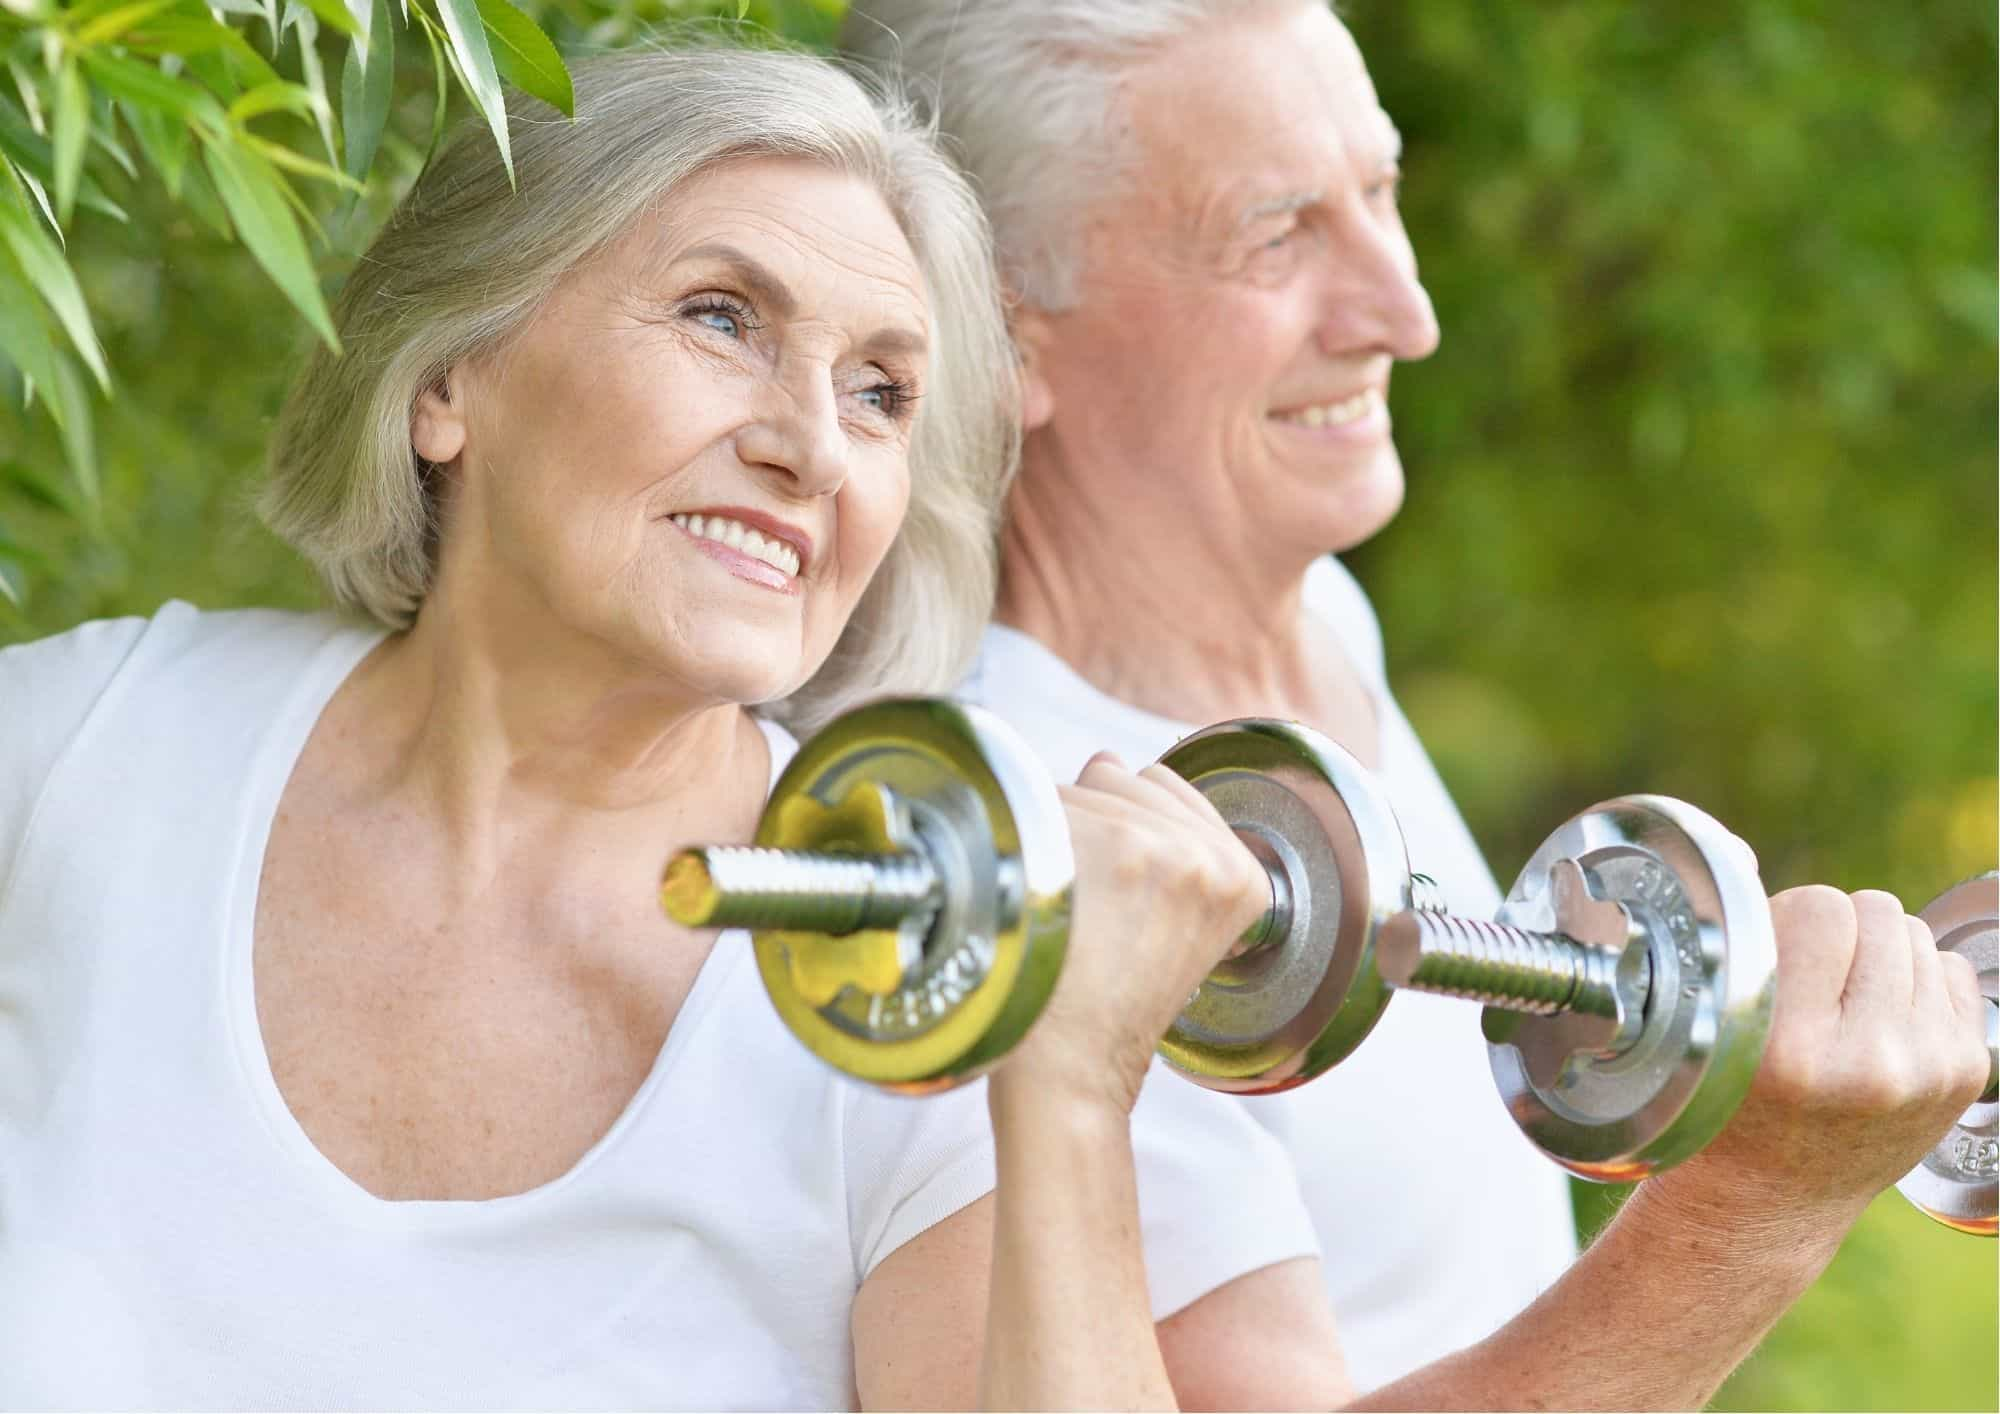 Elderly Australians: Your Fitness and Happiness Goals for 2020